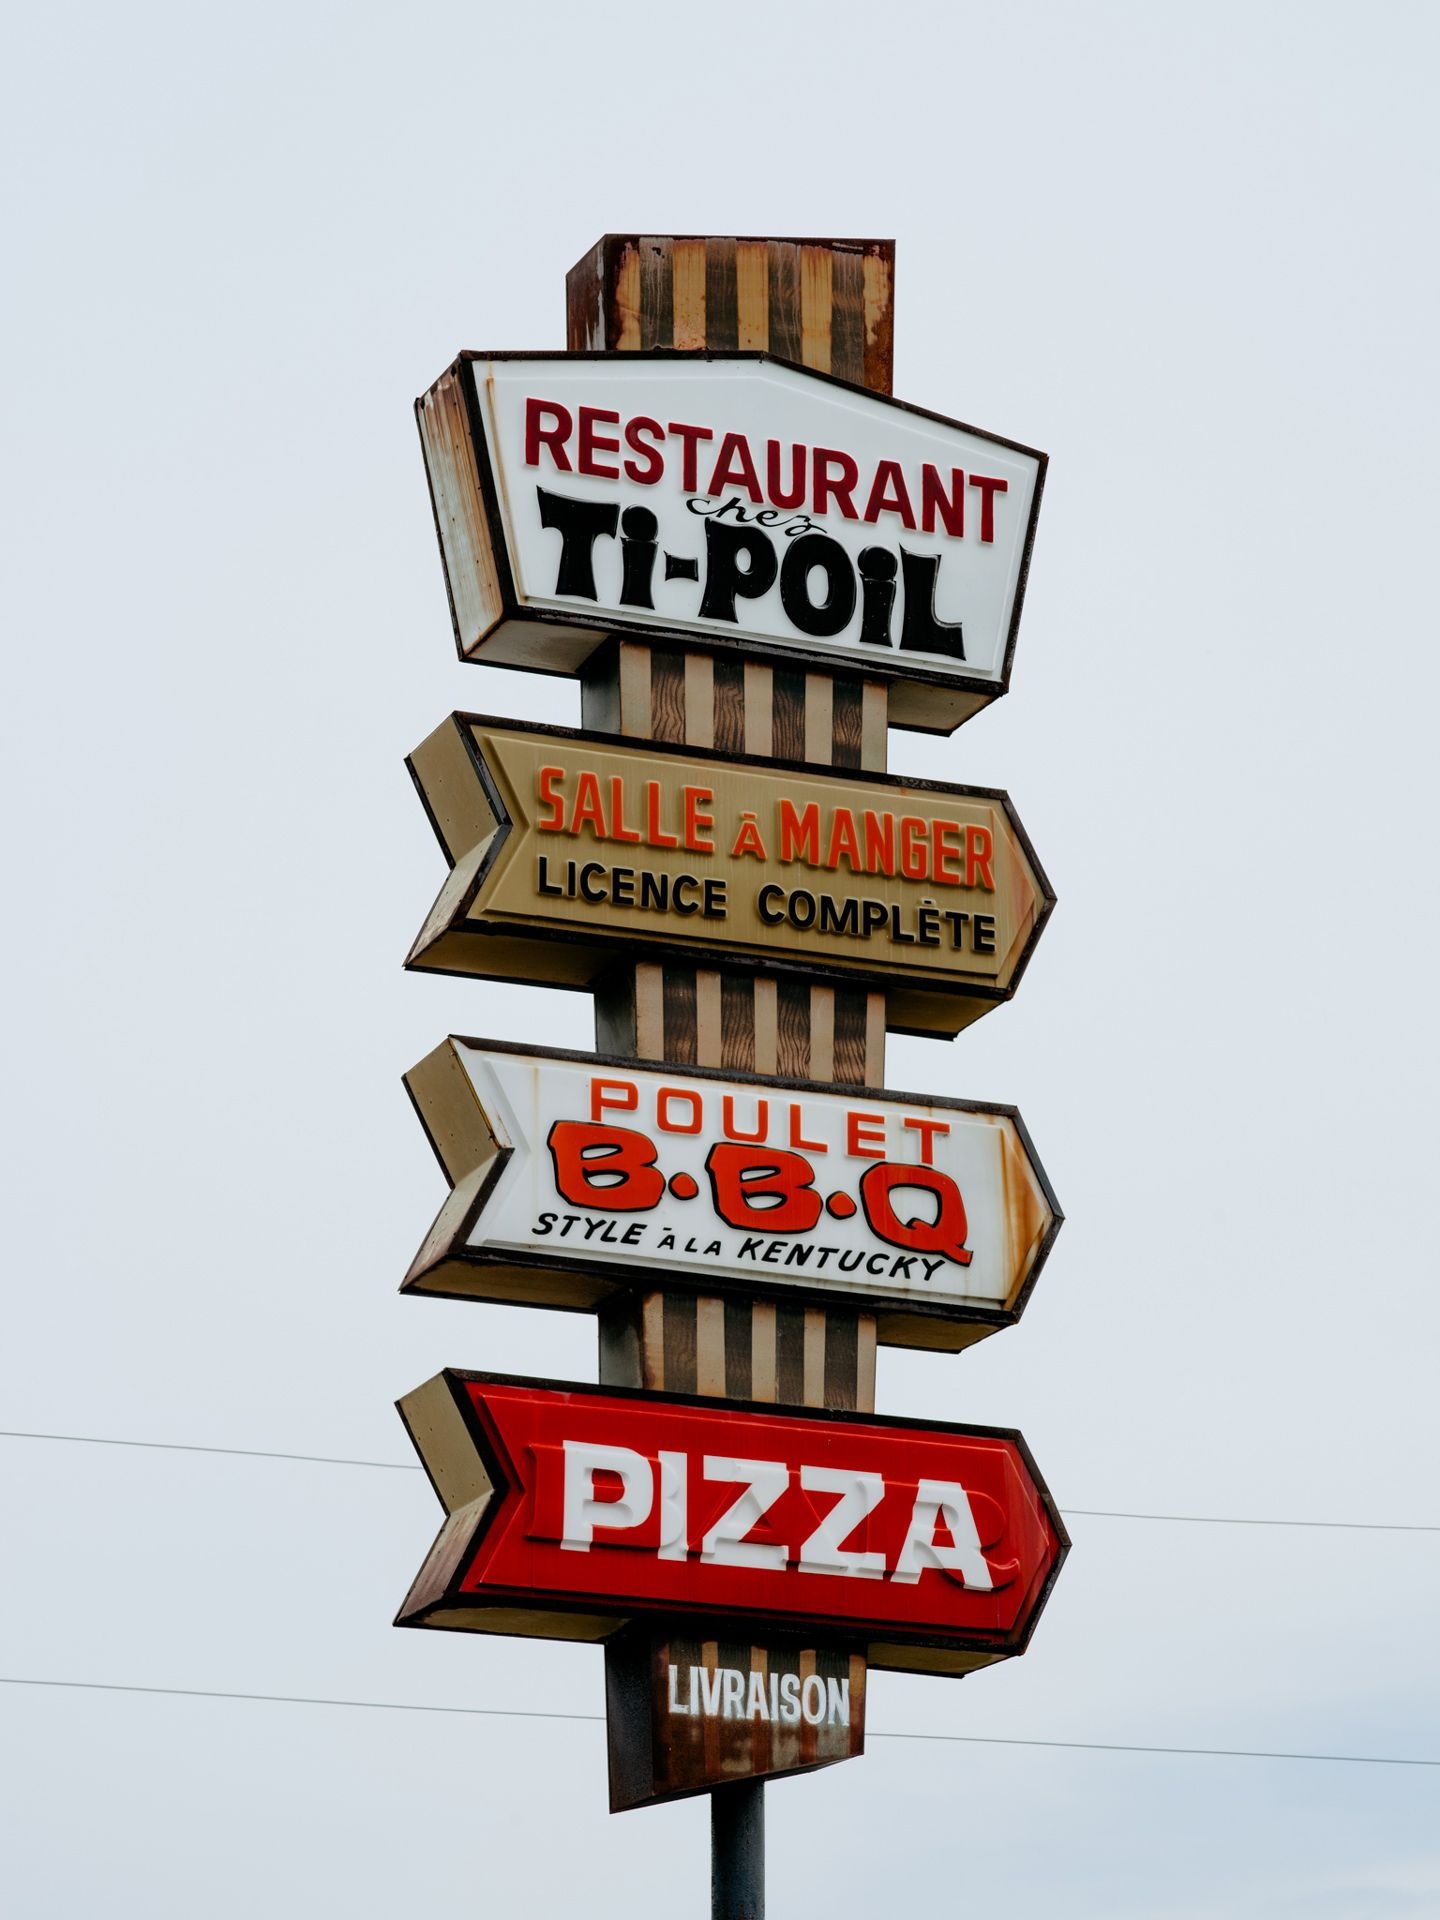 many vintage signs of quebecois restaurants in french by Alexi Hobbs for Larose PAris in St-Tite